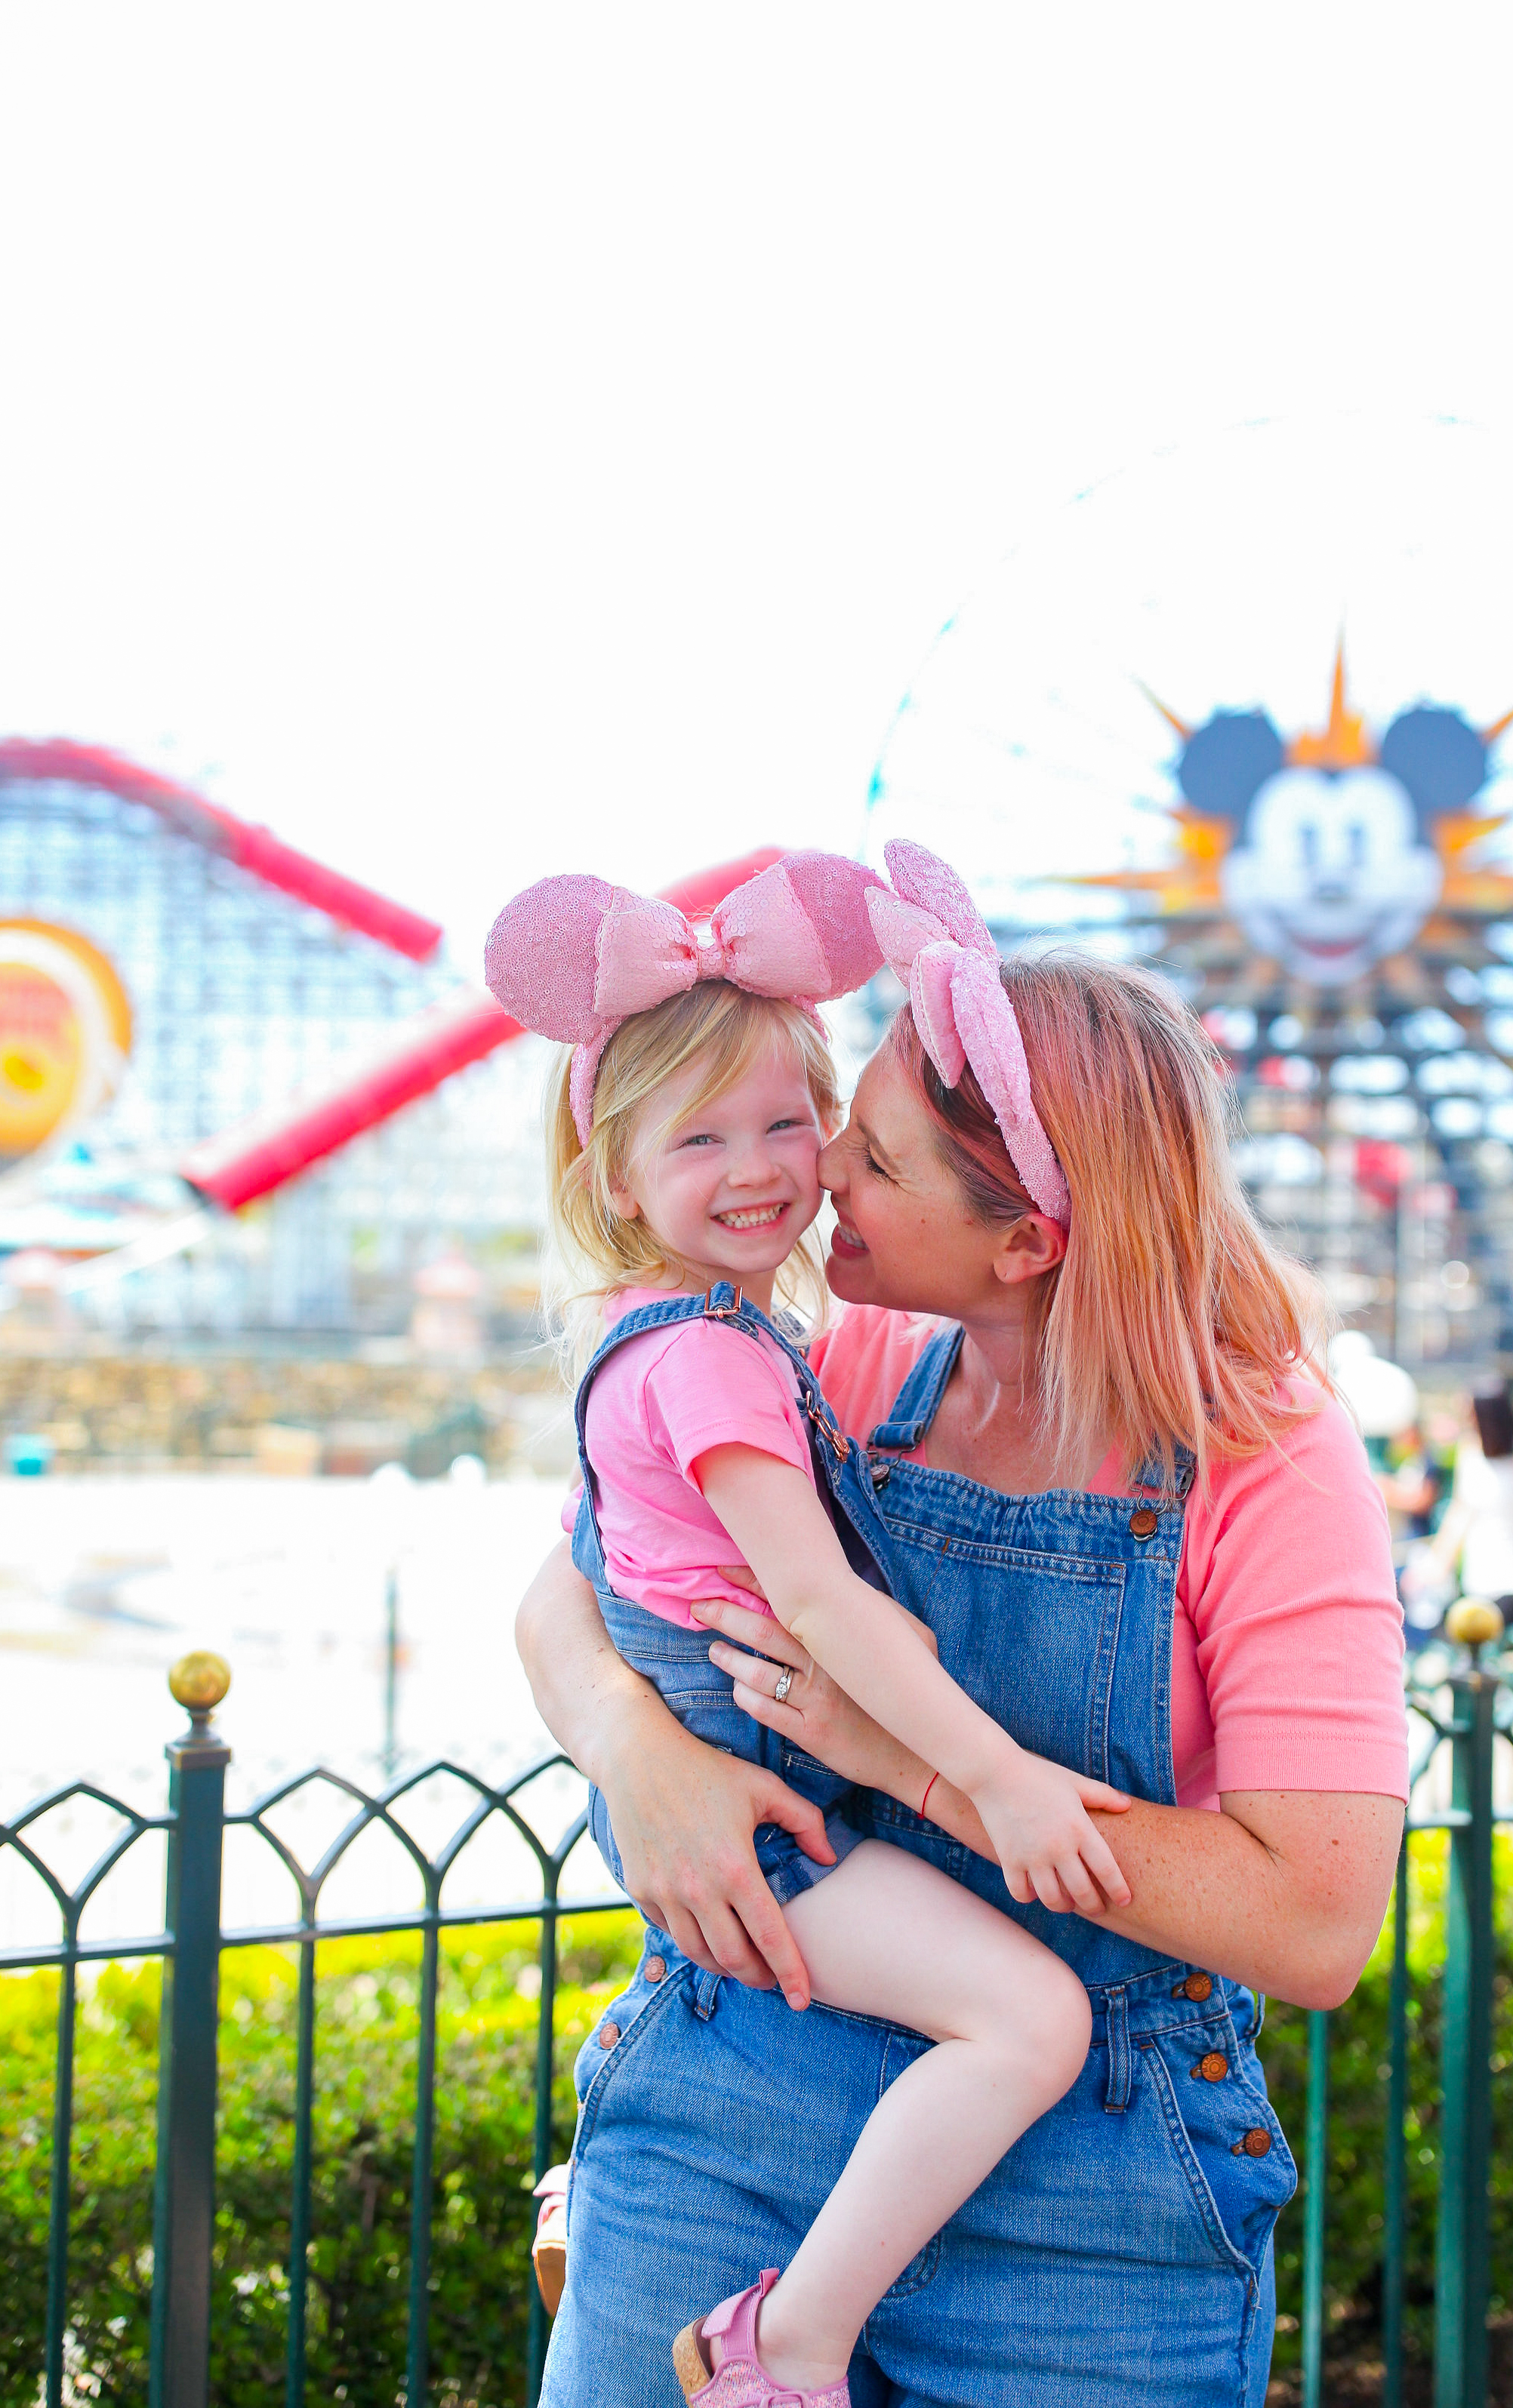 Looking for Disneyland outfits for hot summer days? This mommy and me outfit is PERFECT and look at those Millenial Pink ears!